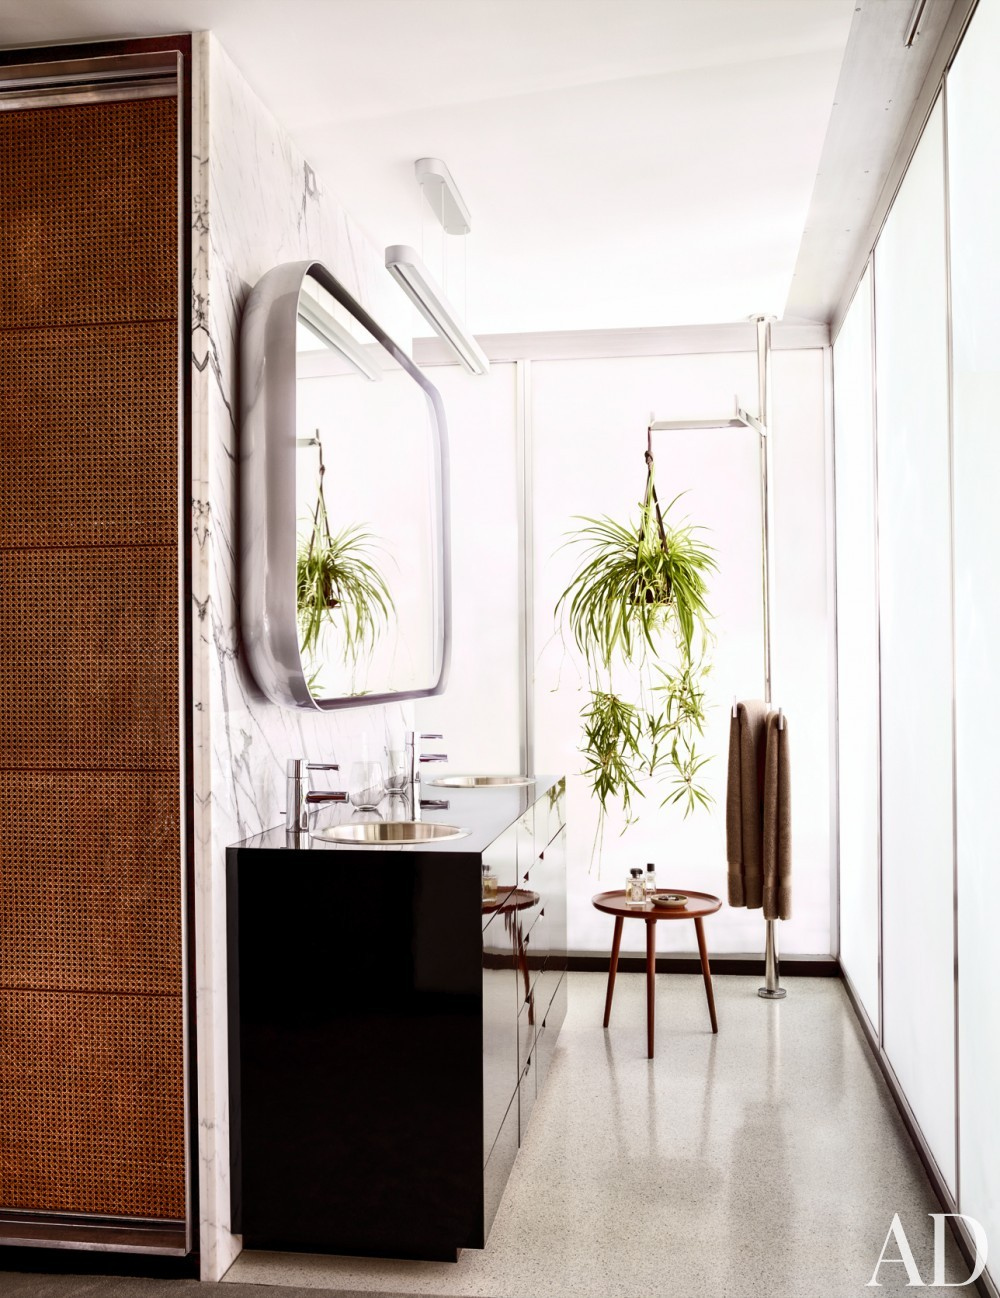 Bathroom by Brad Dunning in Briarcliff Manor, NY